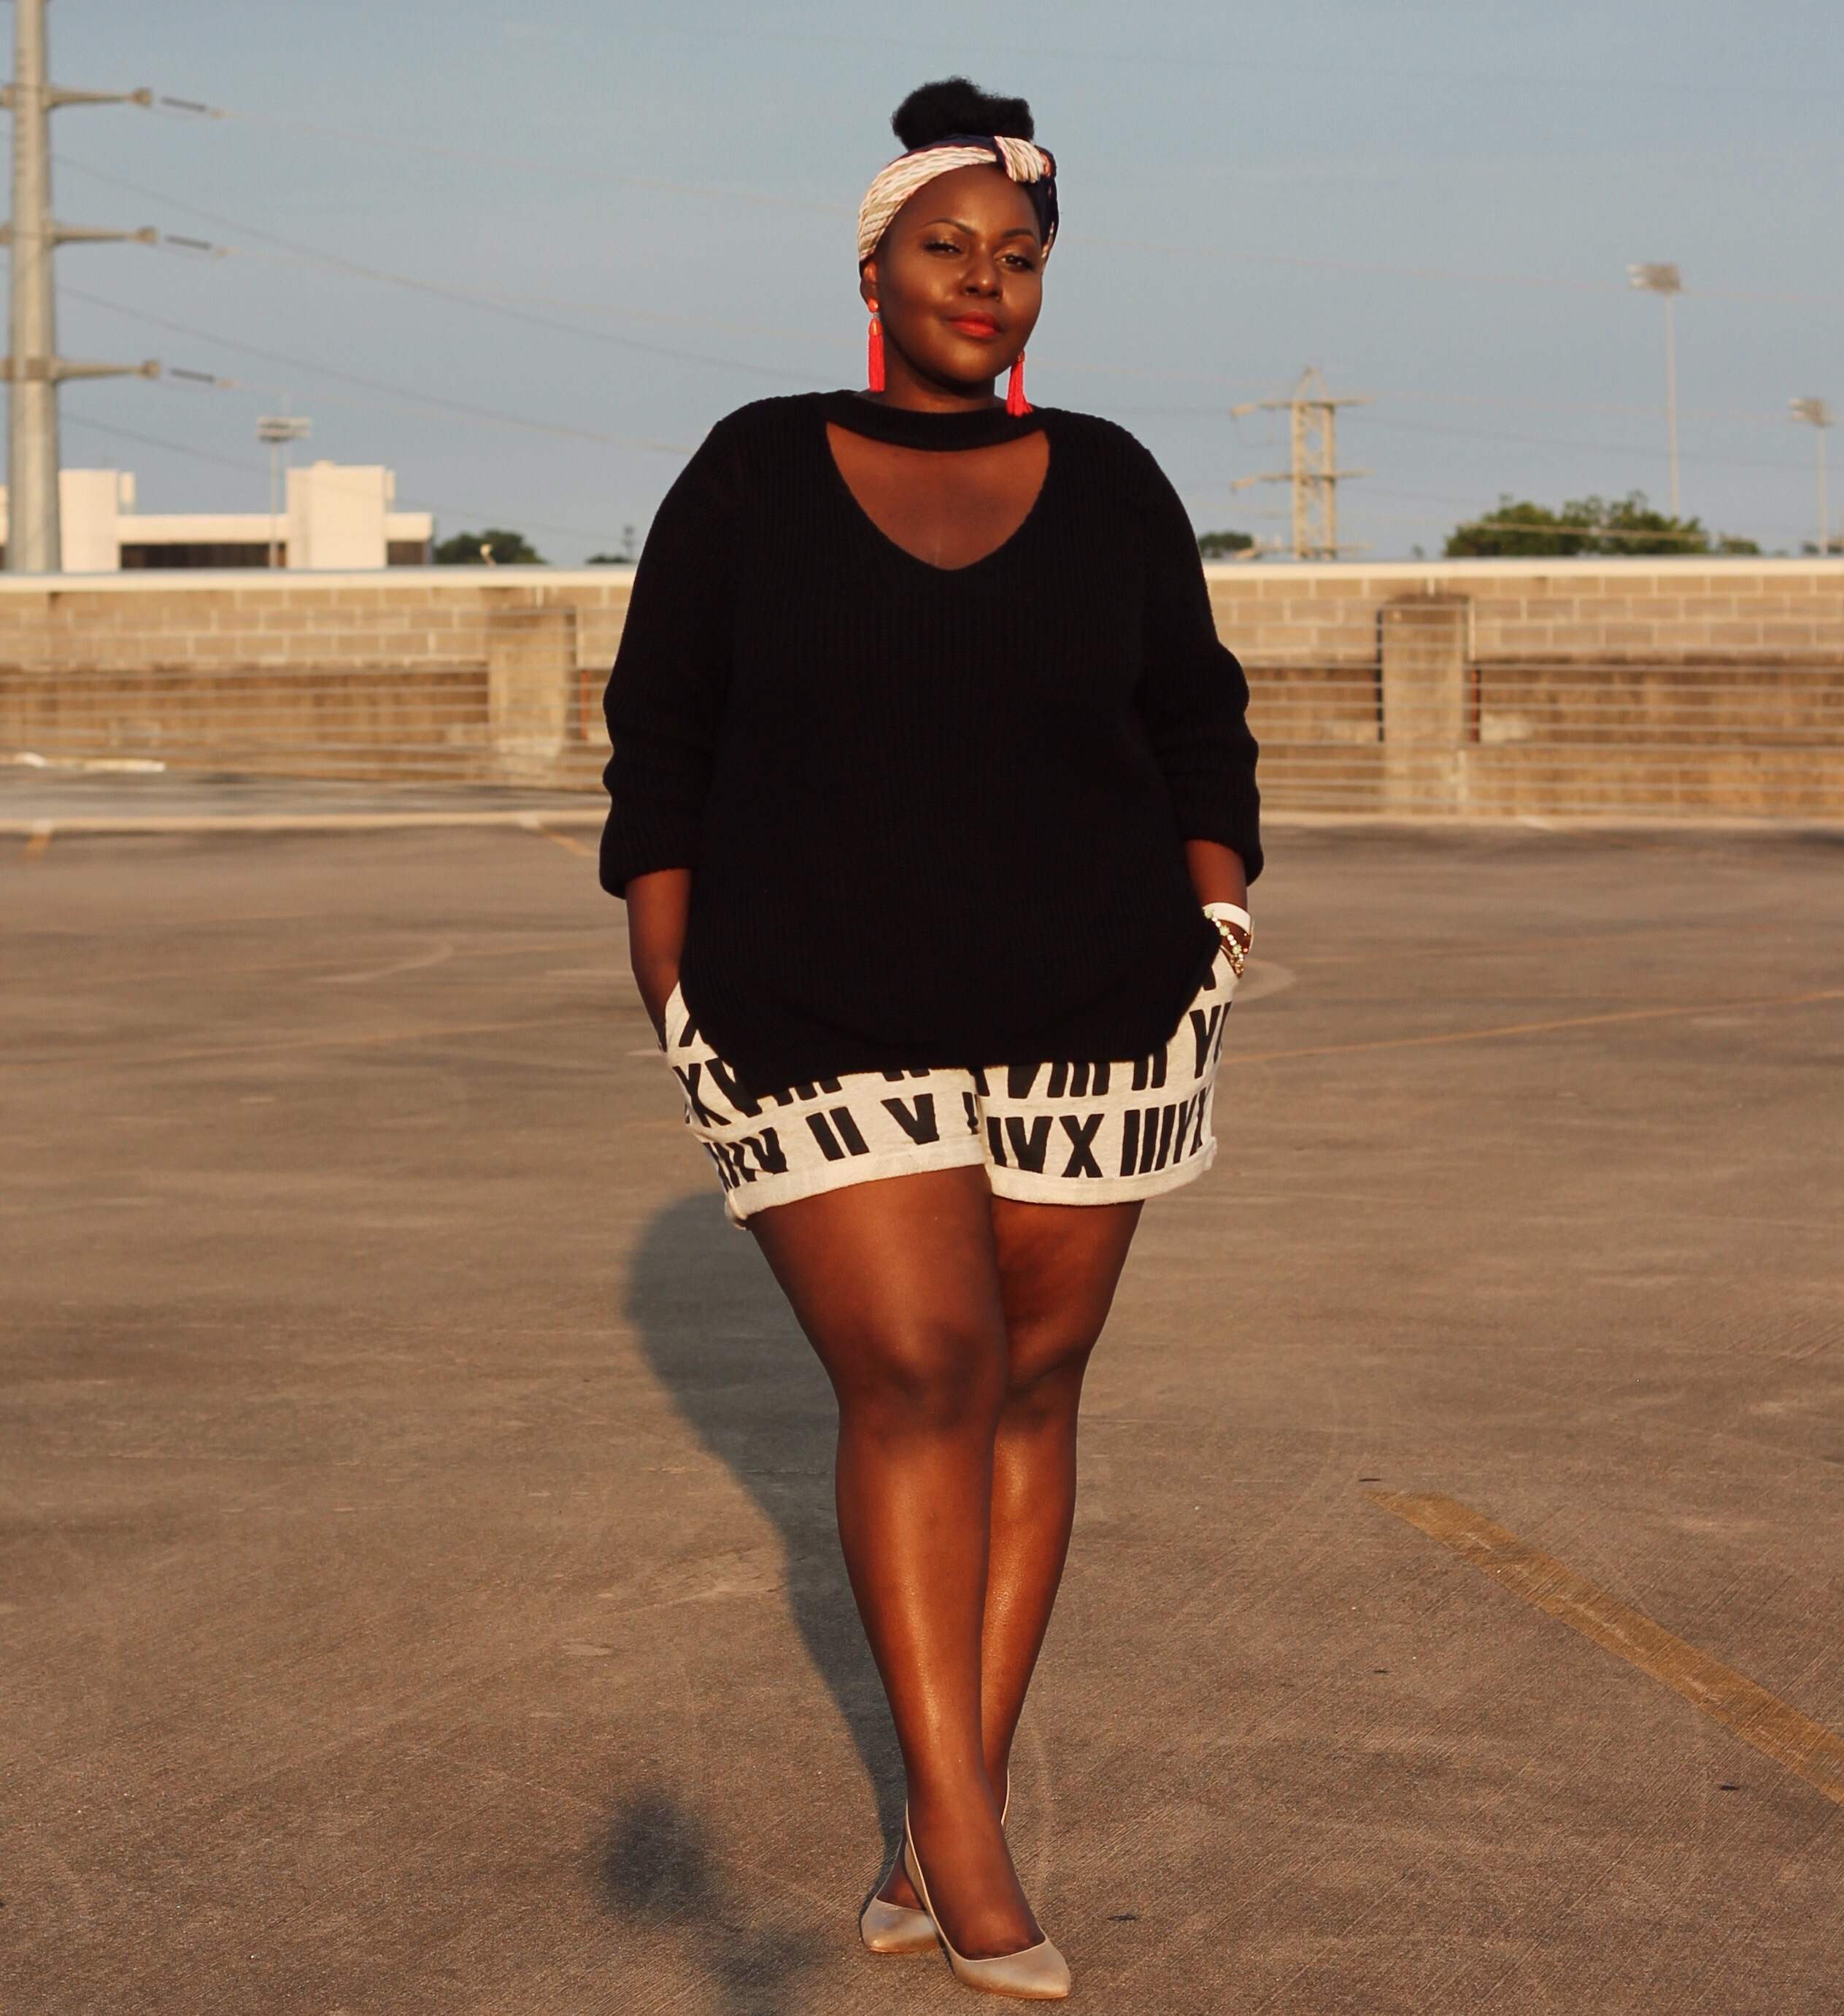 plus size fashion blogs 2017,  beautiful curvy girls,  how to fill the eye brow of a dark skin,  beautiful plus size dark skin girls, plus size black bloggers, clothes for curvy girls, curvy girl fashion clothing, plus blog, plus size fashion tips, plus size women blog, at fashion blog, plus size high fashion, curvy women fashion, plus blog, curvy girl fashion blog, style plus curves, plus size fashion instagram, curvy girl blog, bbw blog, plus size street fashion, plus size beauty blog, plus size fashion ideas, curvy girl summer outfits, plus size fashion magazine, plus fashion bloggers, boohoo, rebdolls bodycon maxi dresses, birthday post